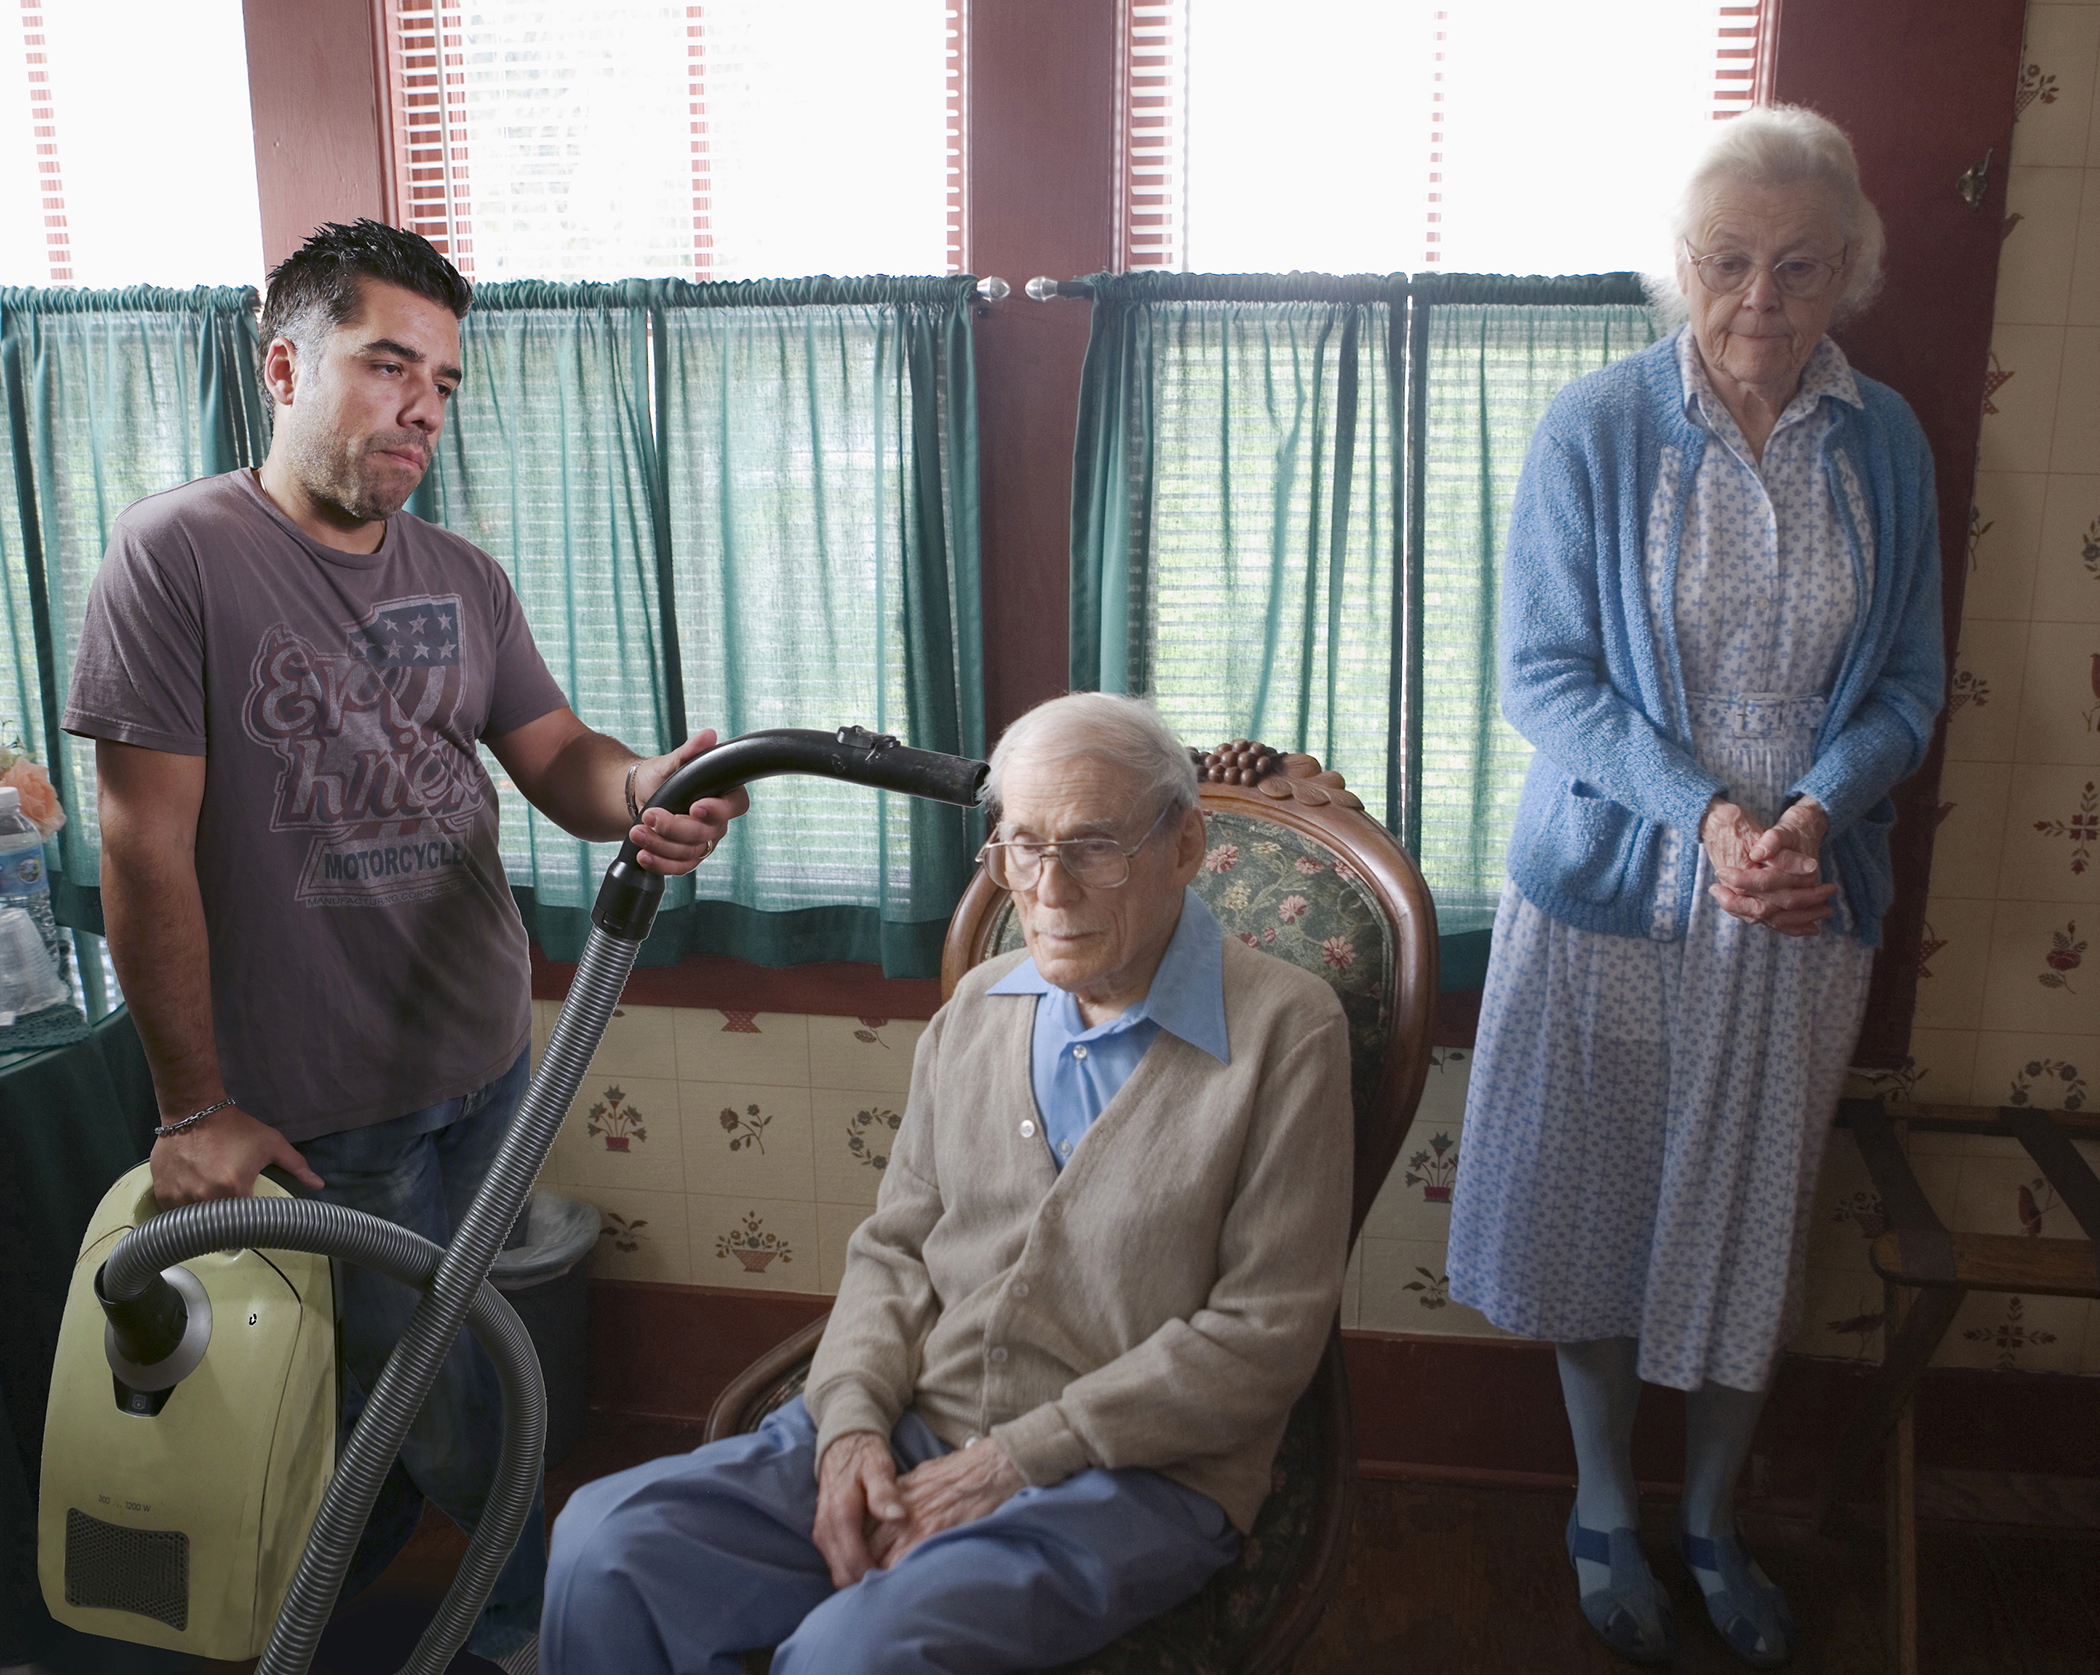 Vacuuming the elderly